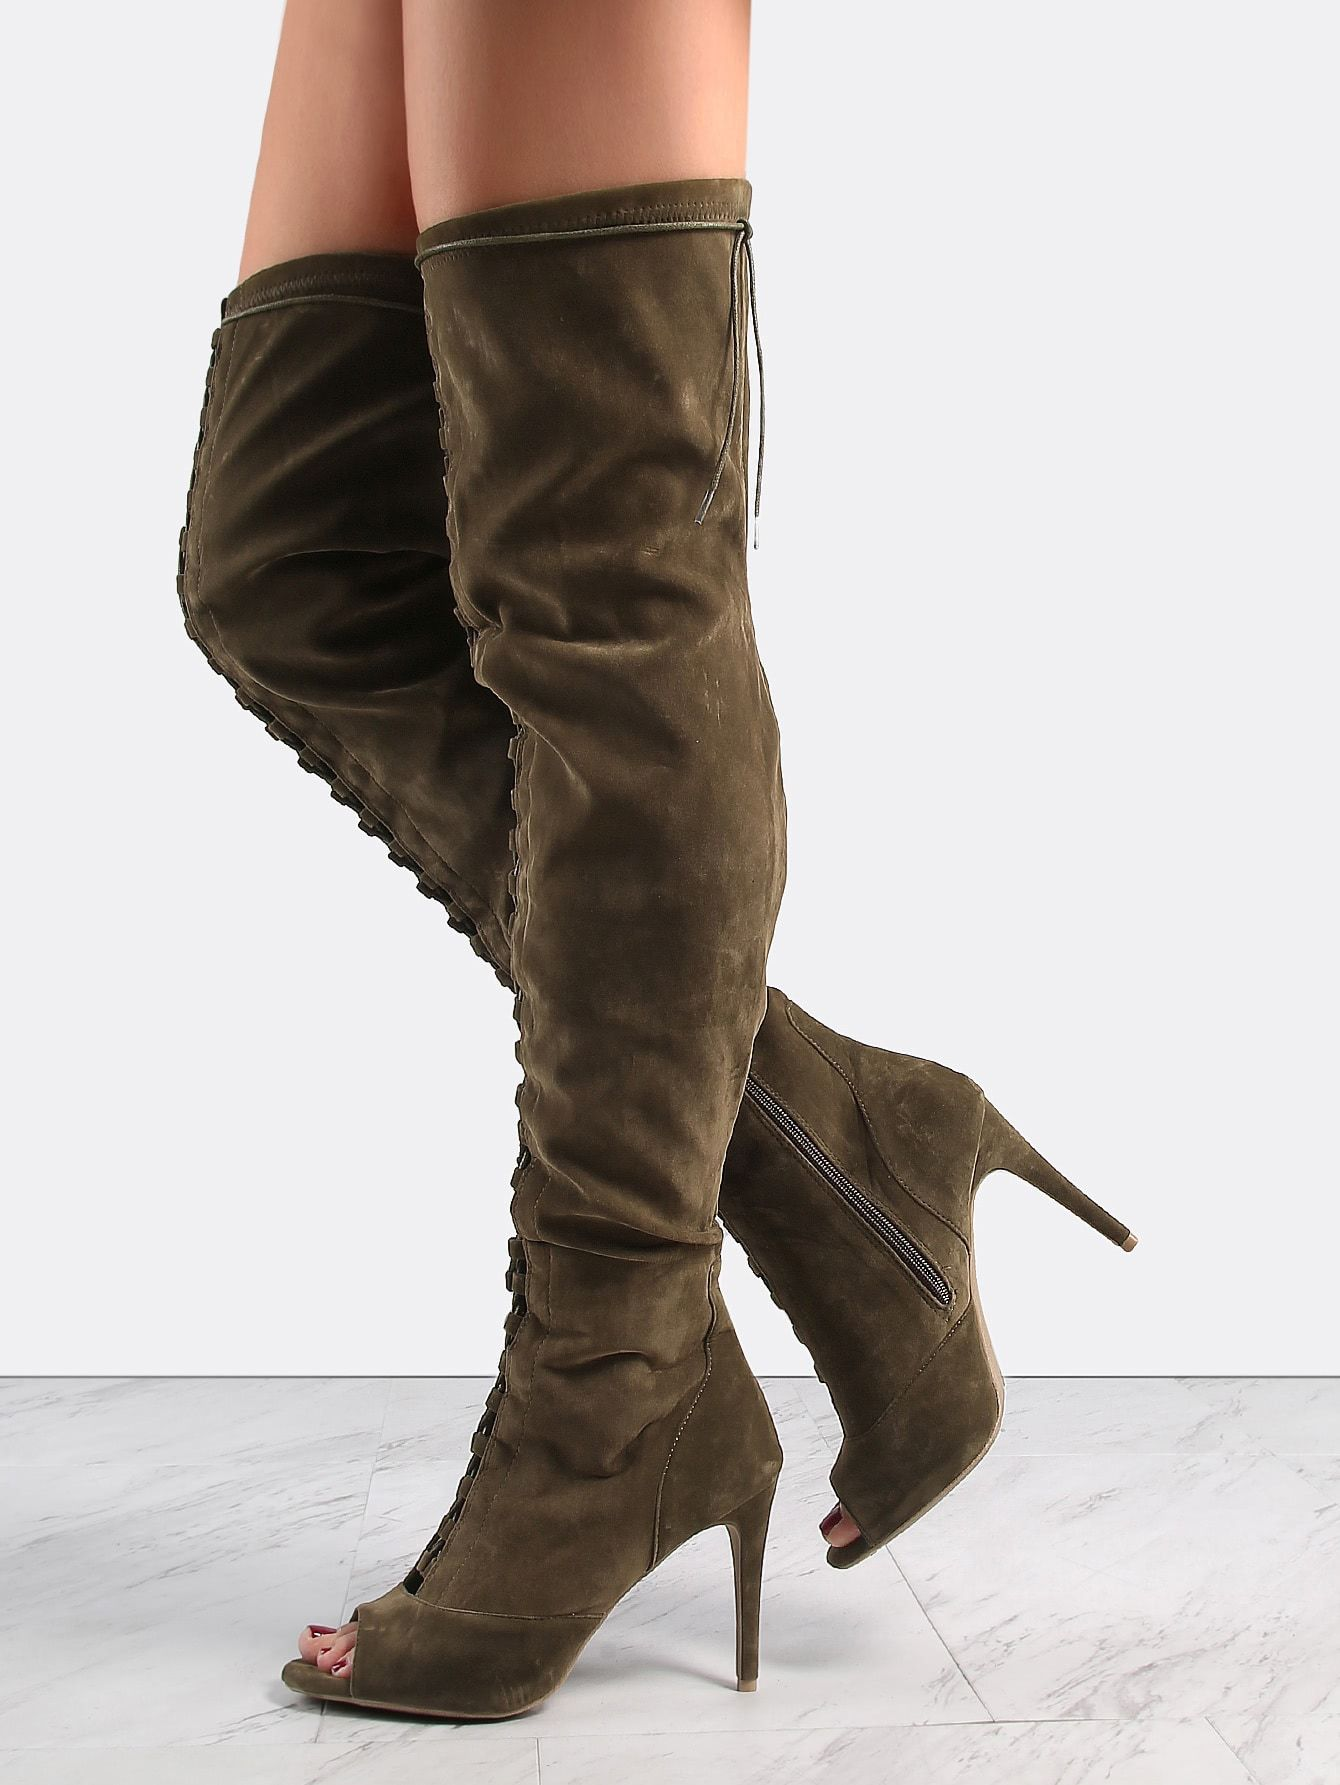 54eb827085 Casual Peep Toe OTK/Thigh High Side zipper Green Mid Heel Stiletto Lace Up  Suede Stiletto Heel Boots OLIVE